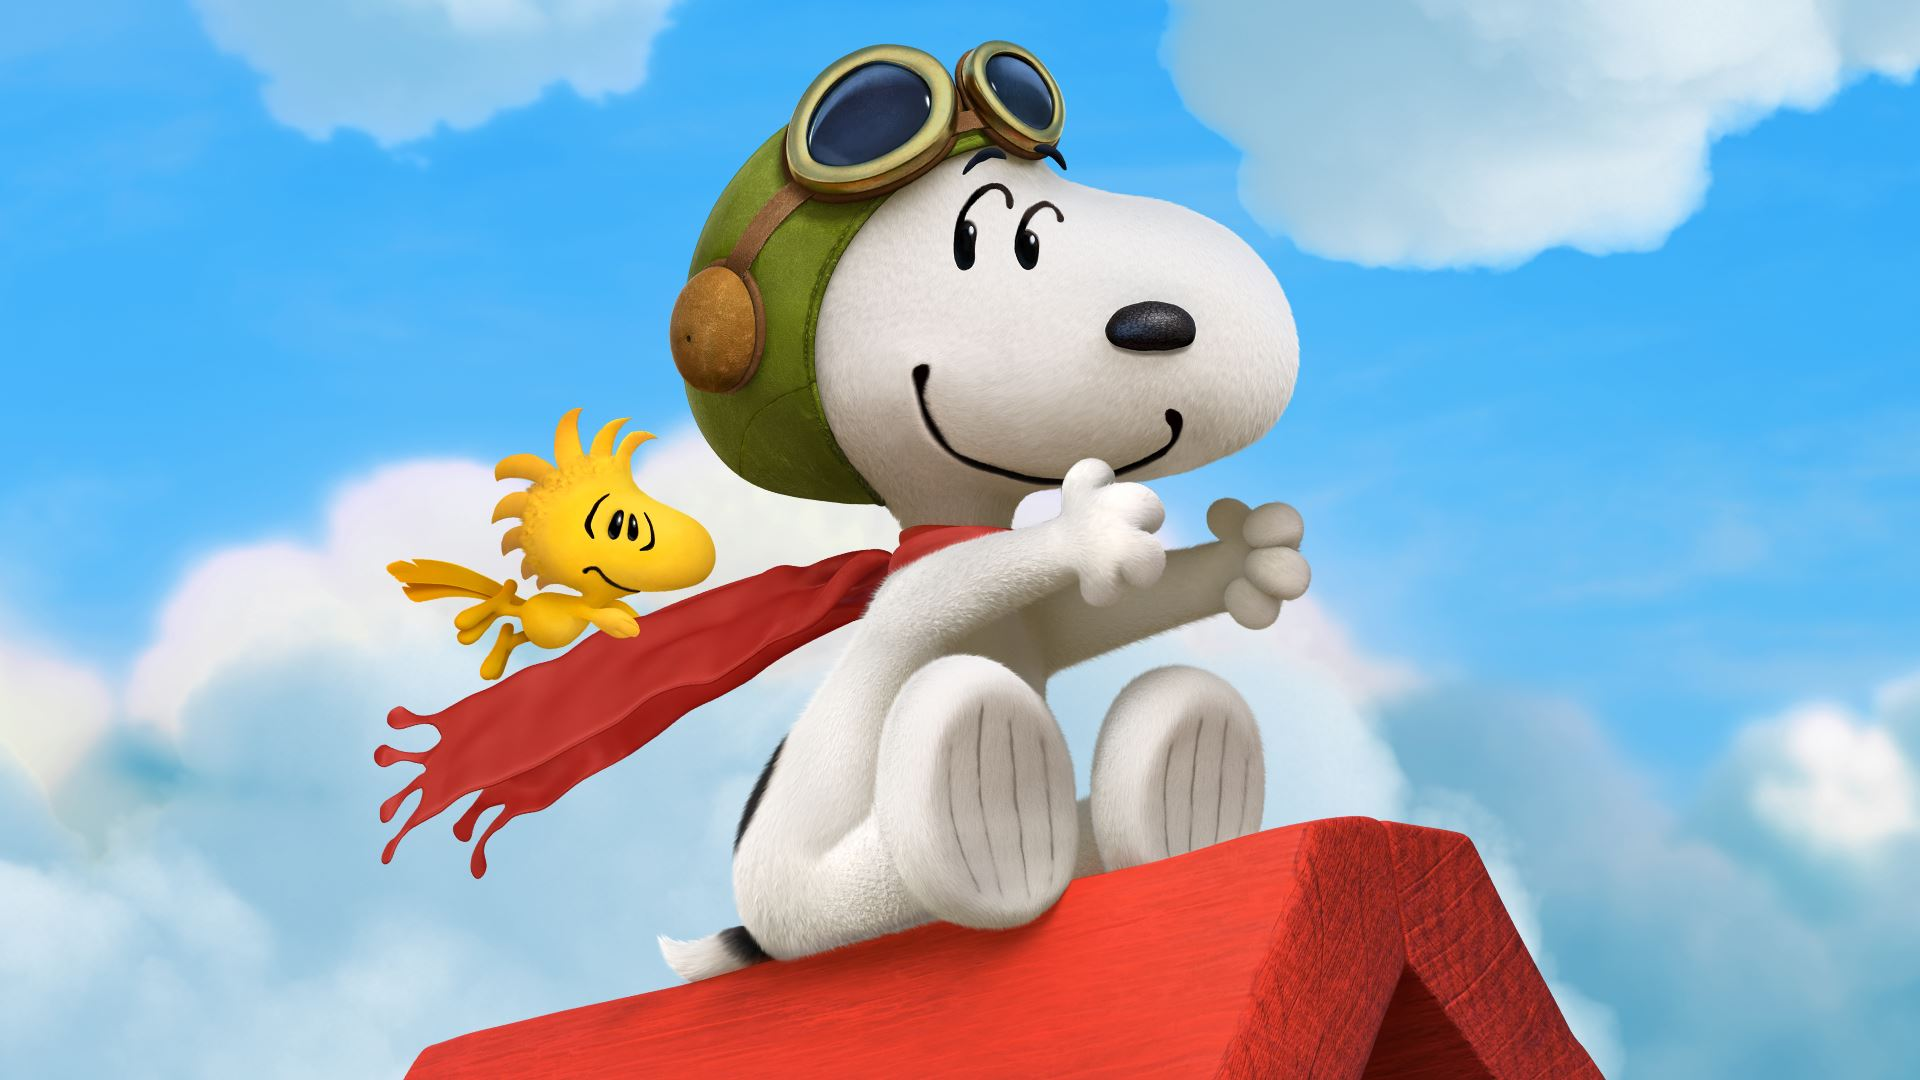 Desktop Snoopy HD Wallpapers 1920x1080